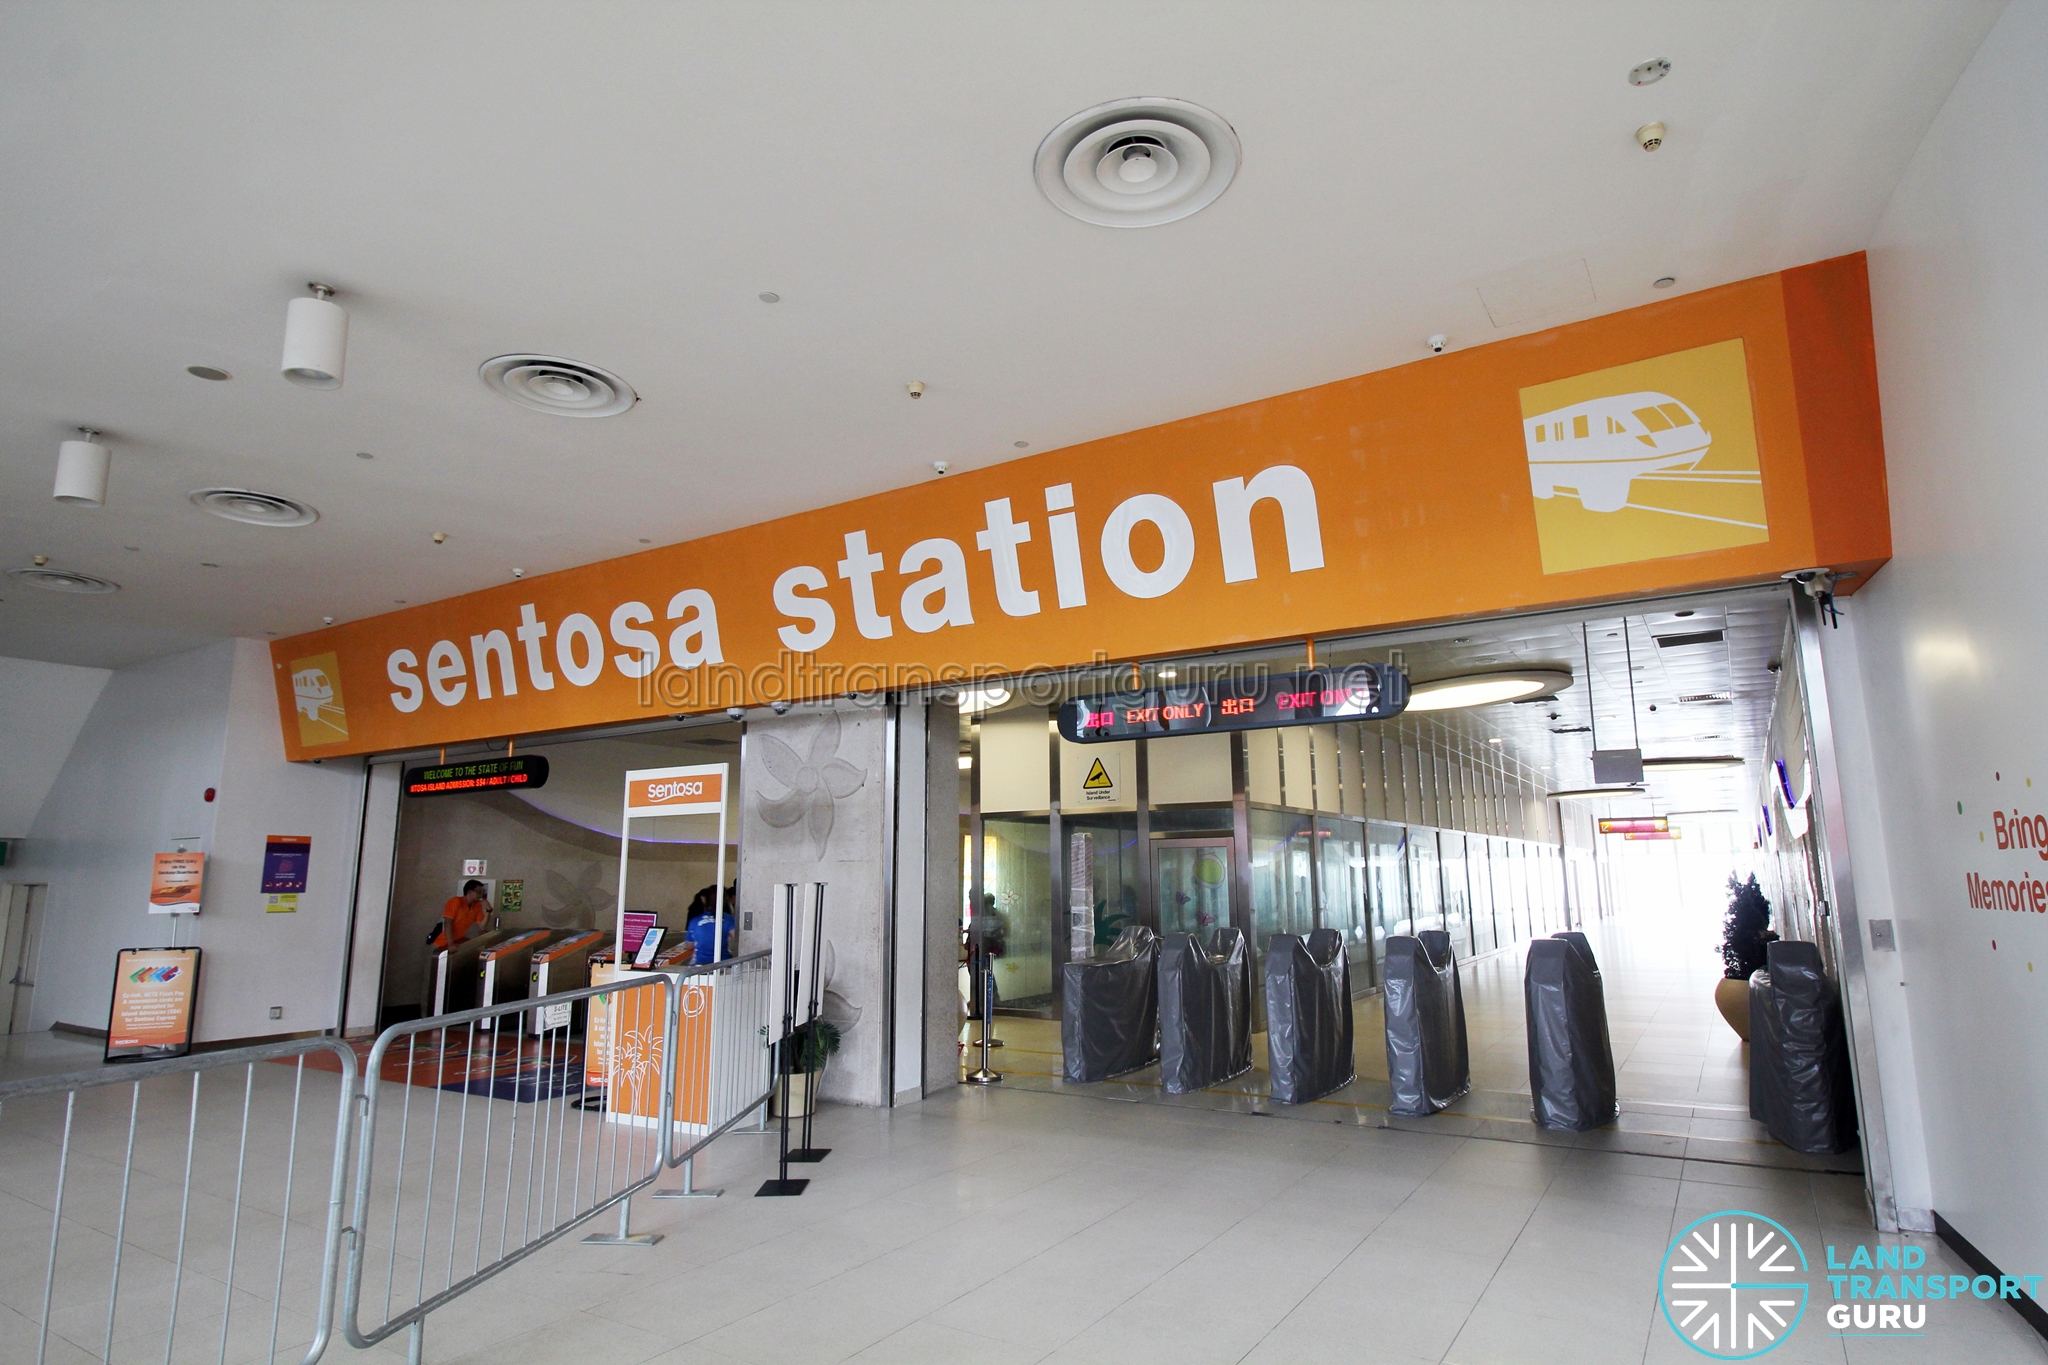 Sentosa Station Land Transport Guru